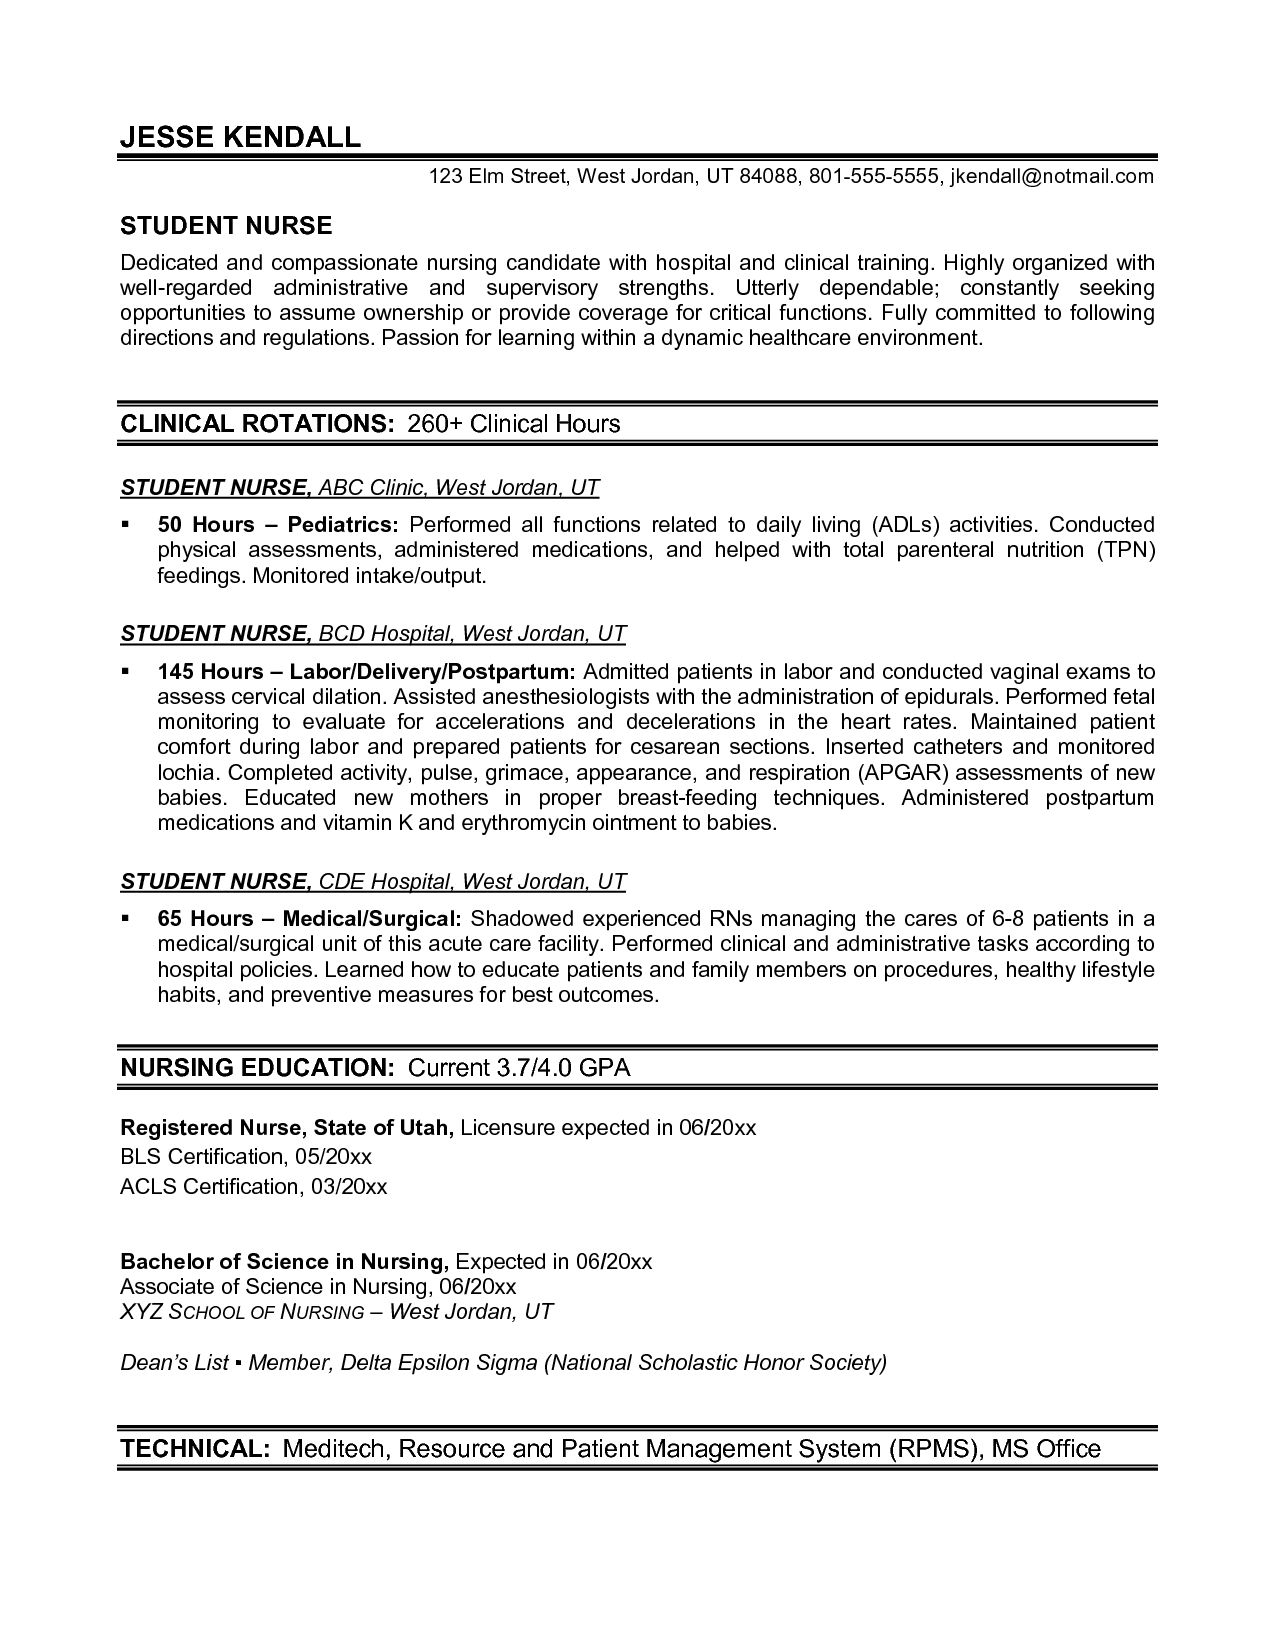 New Grad Resume Labor And Delivery Rn Yahoo Image Search